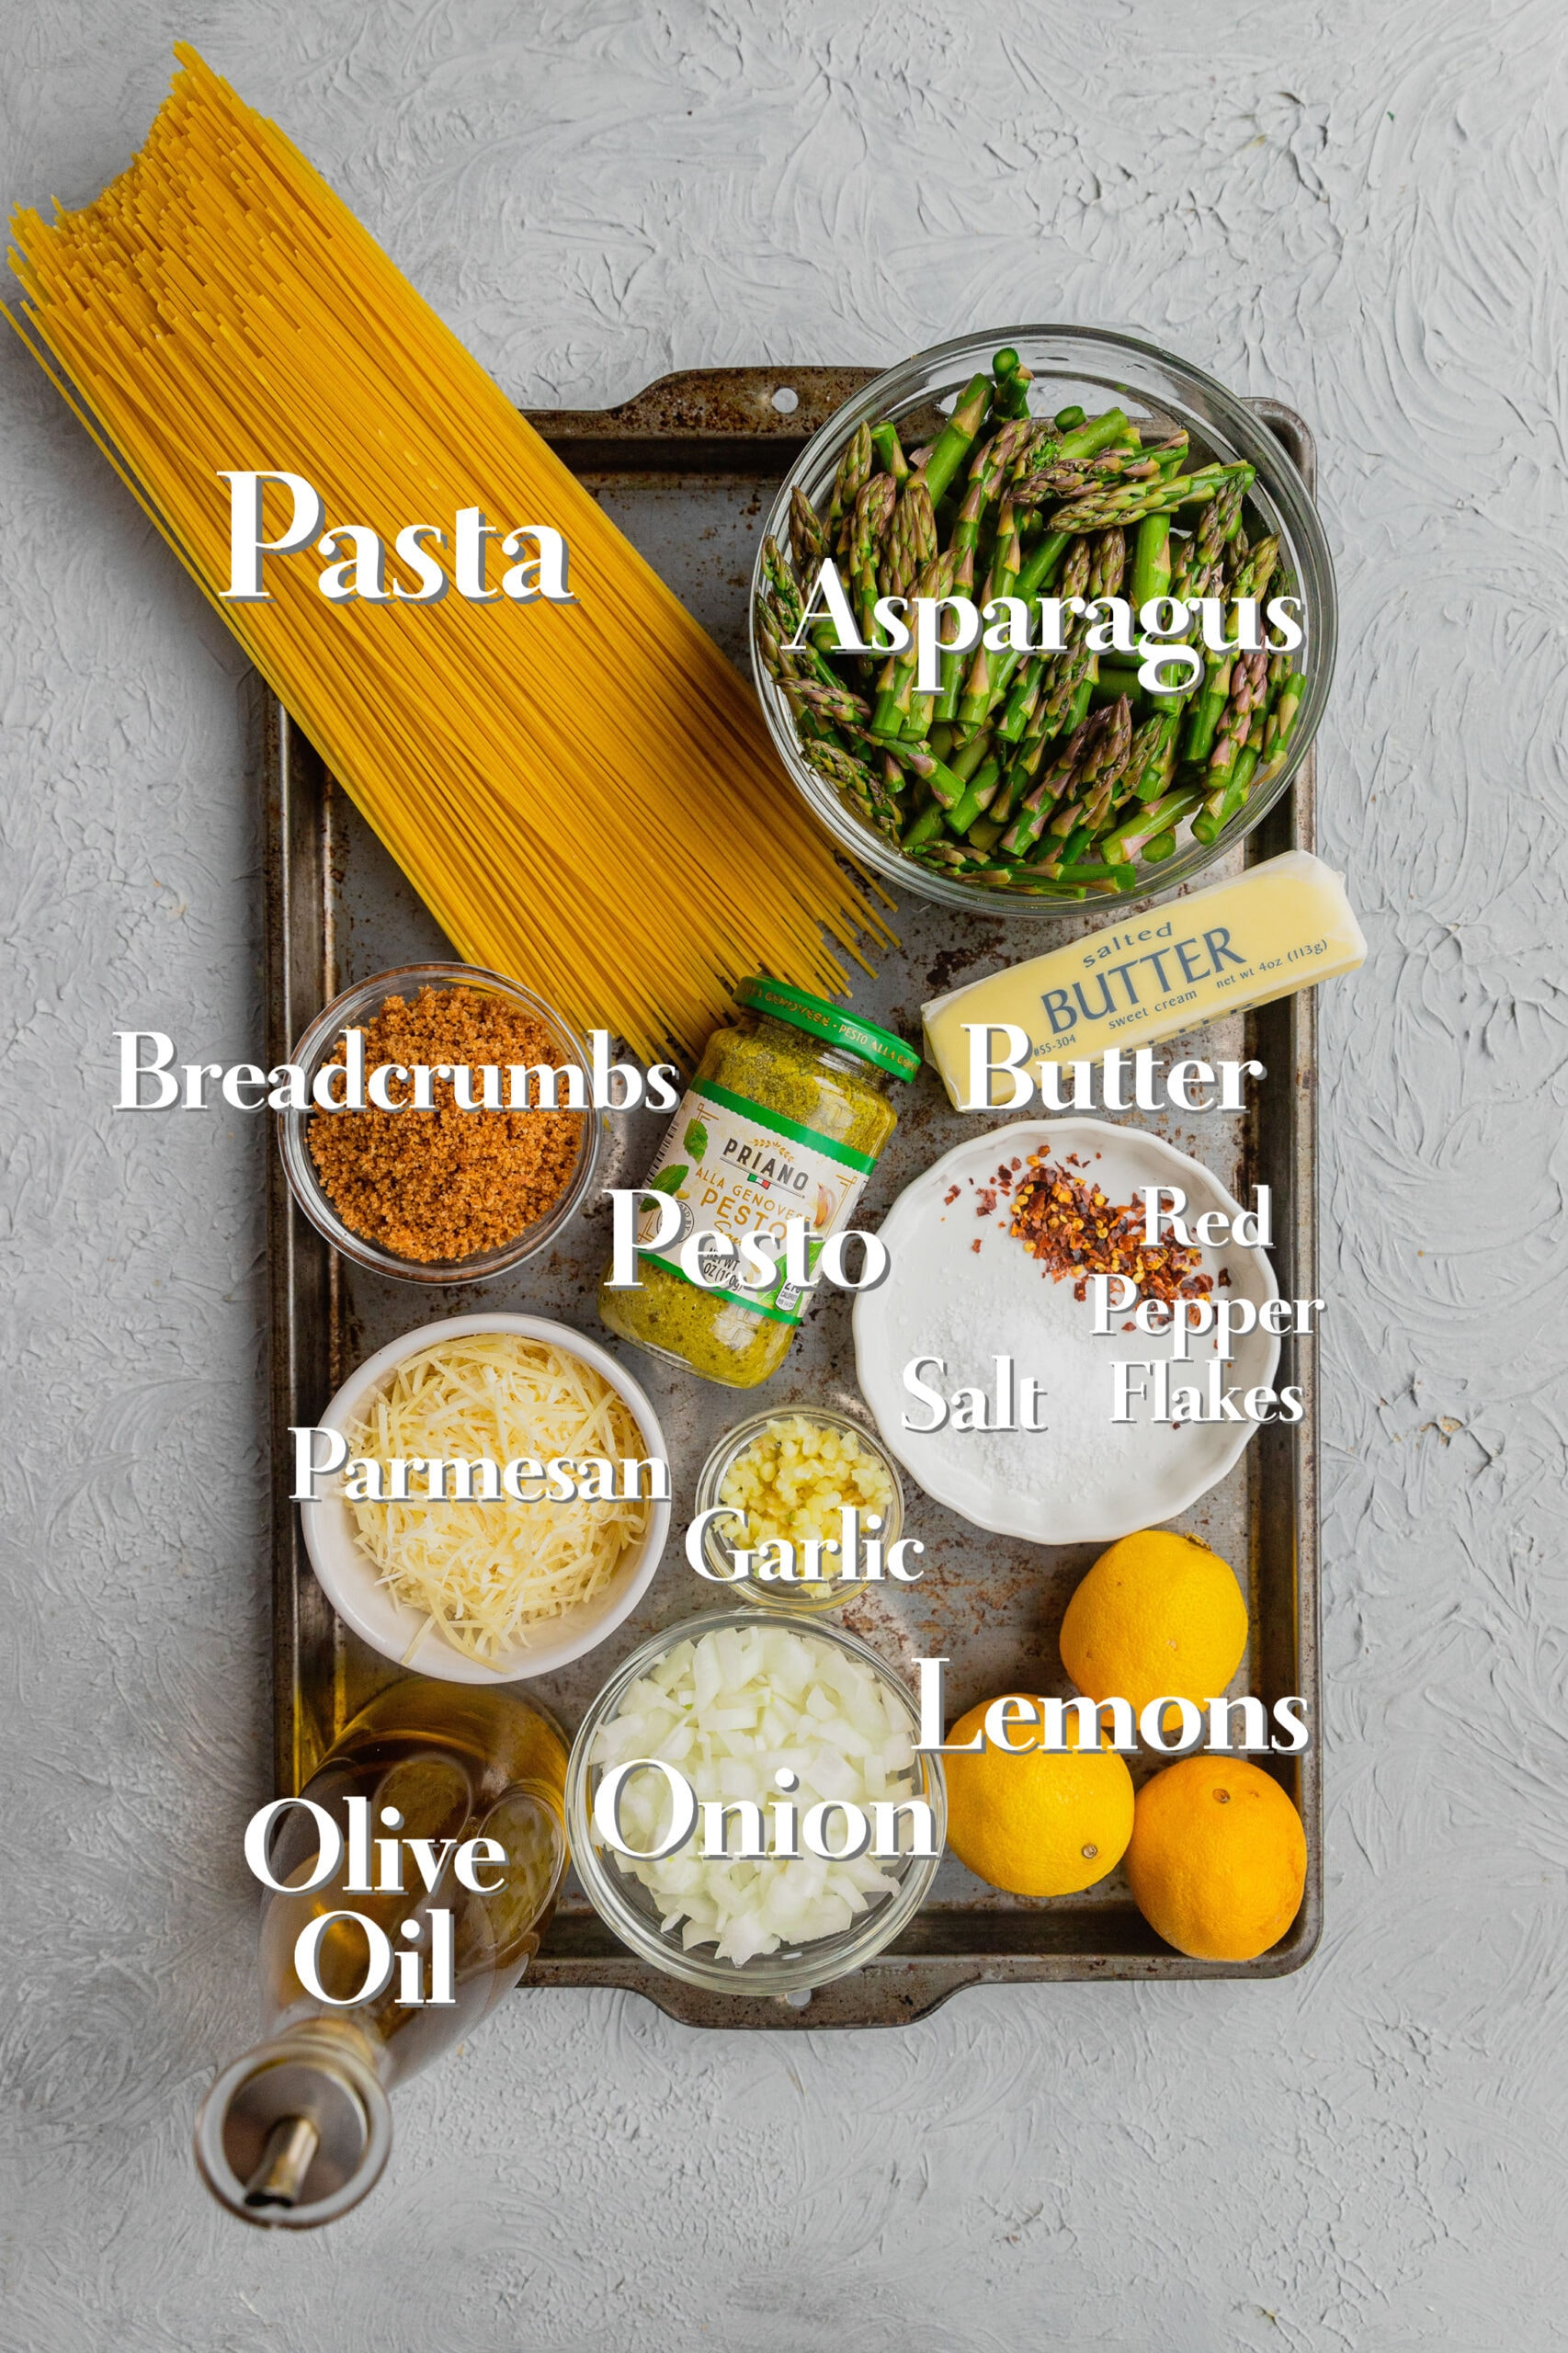 All the ingredients for an asparagus pasta recipe are in various bowls on a rimmed baking sheet.